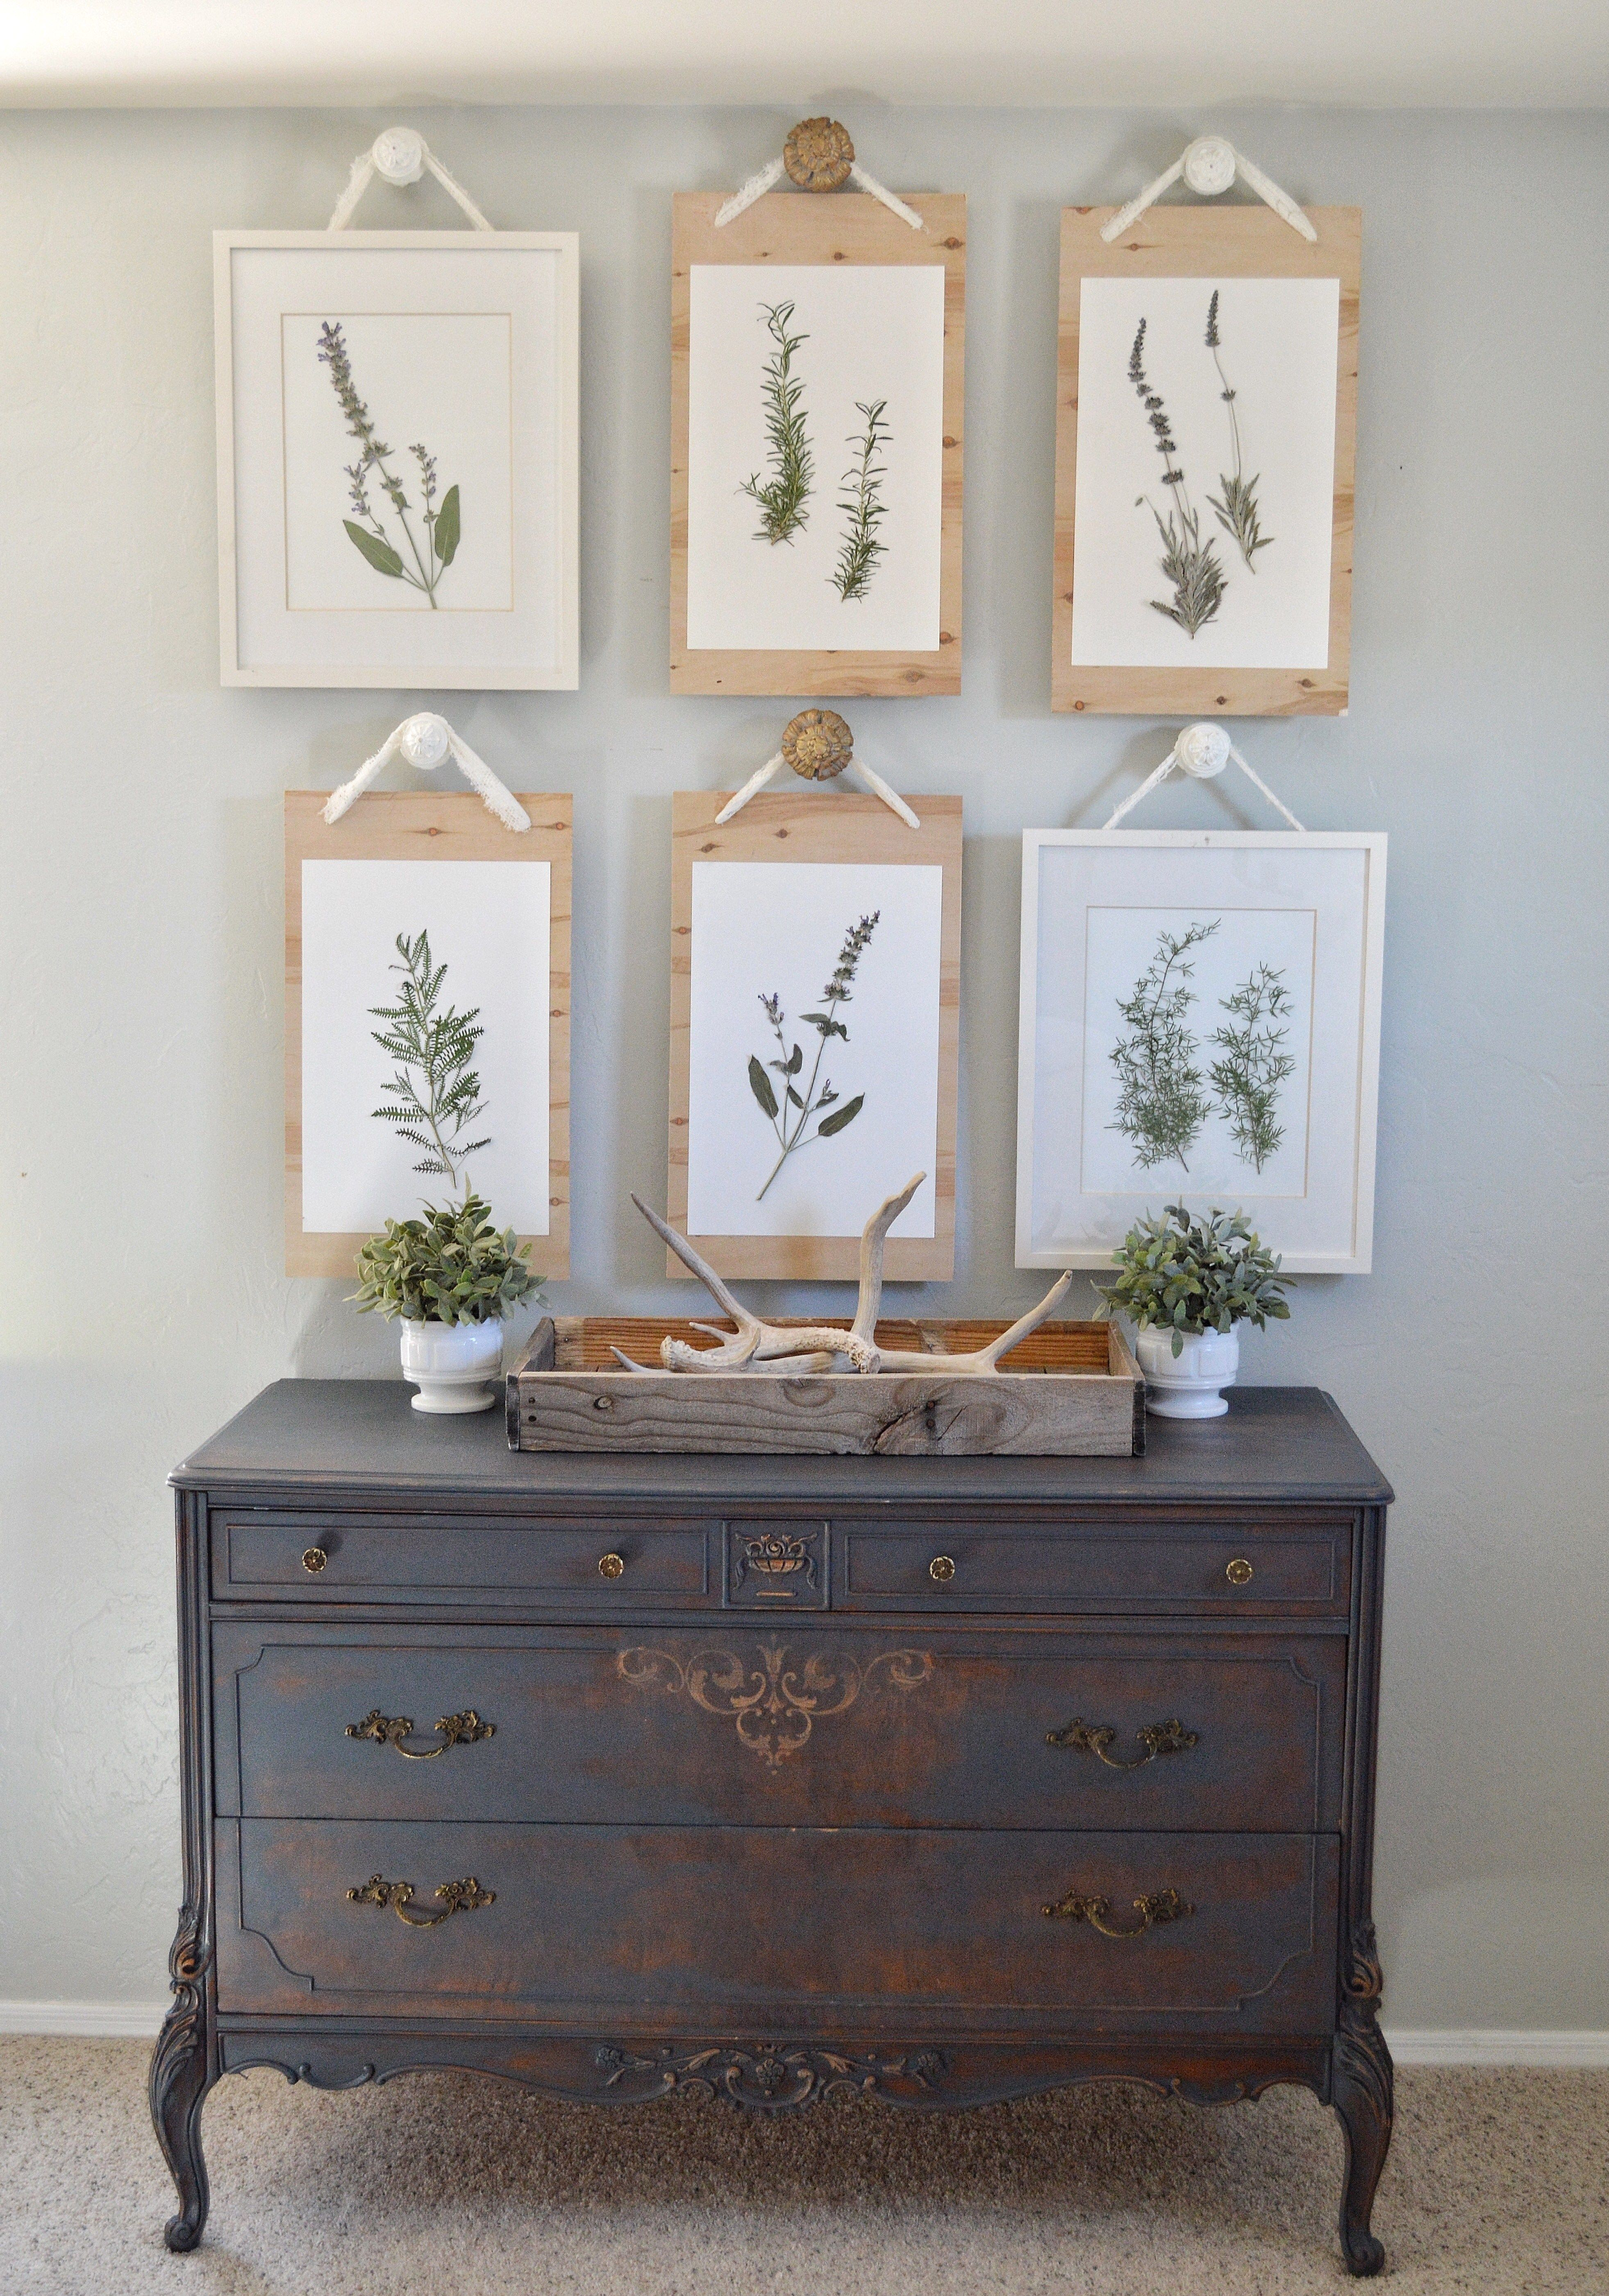 Diy spring wall art decorating ideas pinterest spring walls